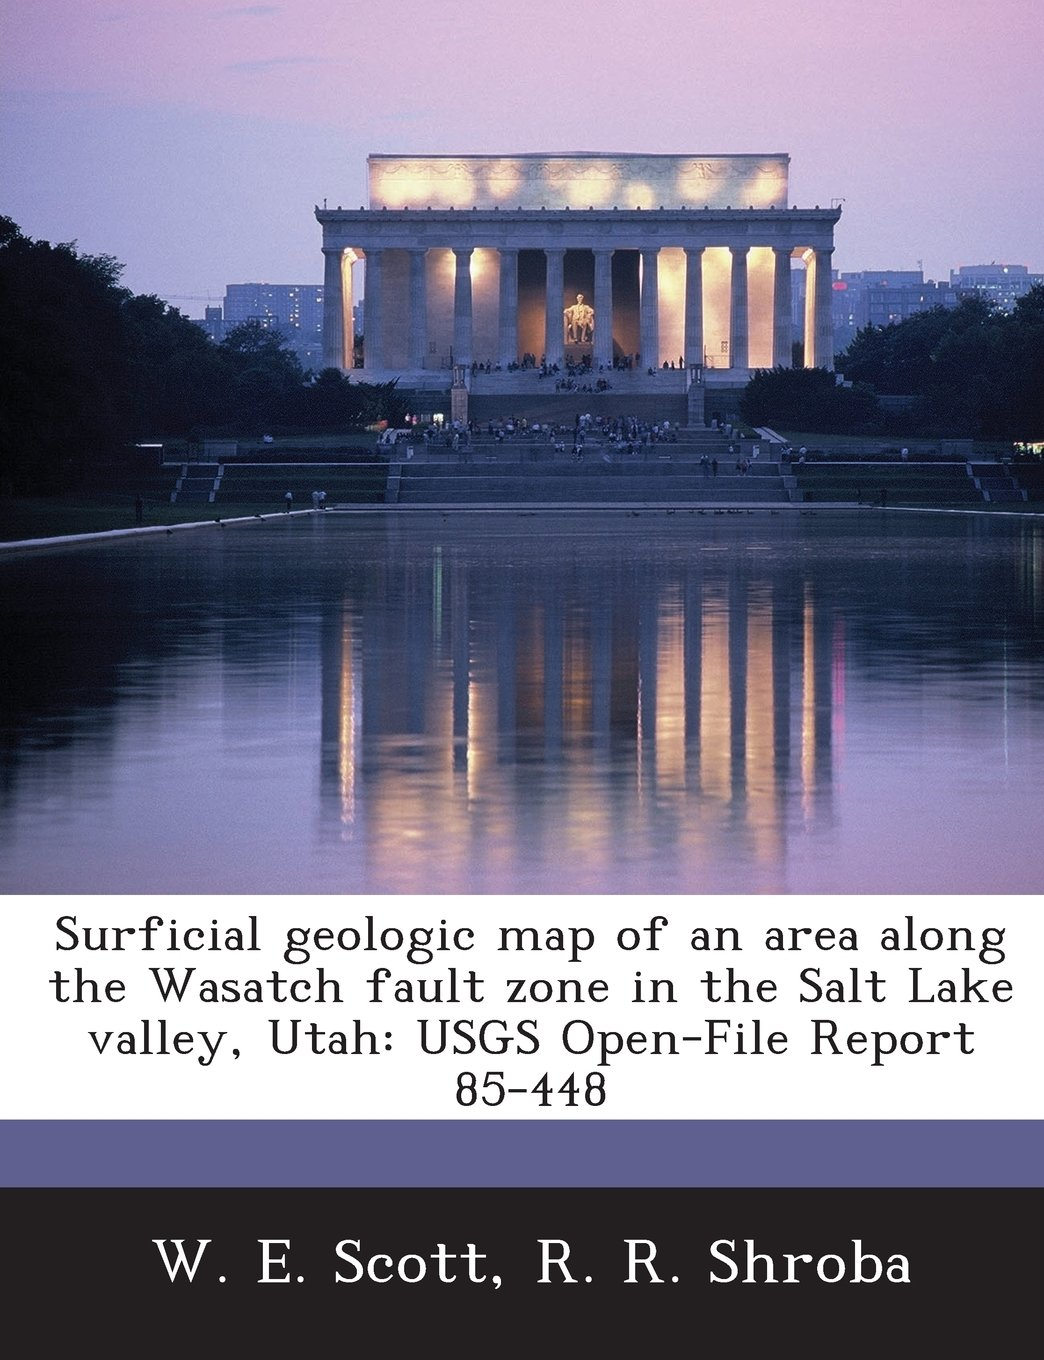 Read Online Surficial geologic map of an area along the Wasatch fault zone in the Salt Lake valley, Utah: USGS Open-File Report 85-448 pdf epub